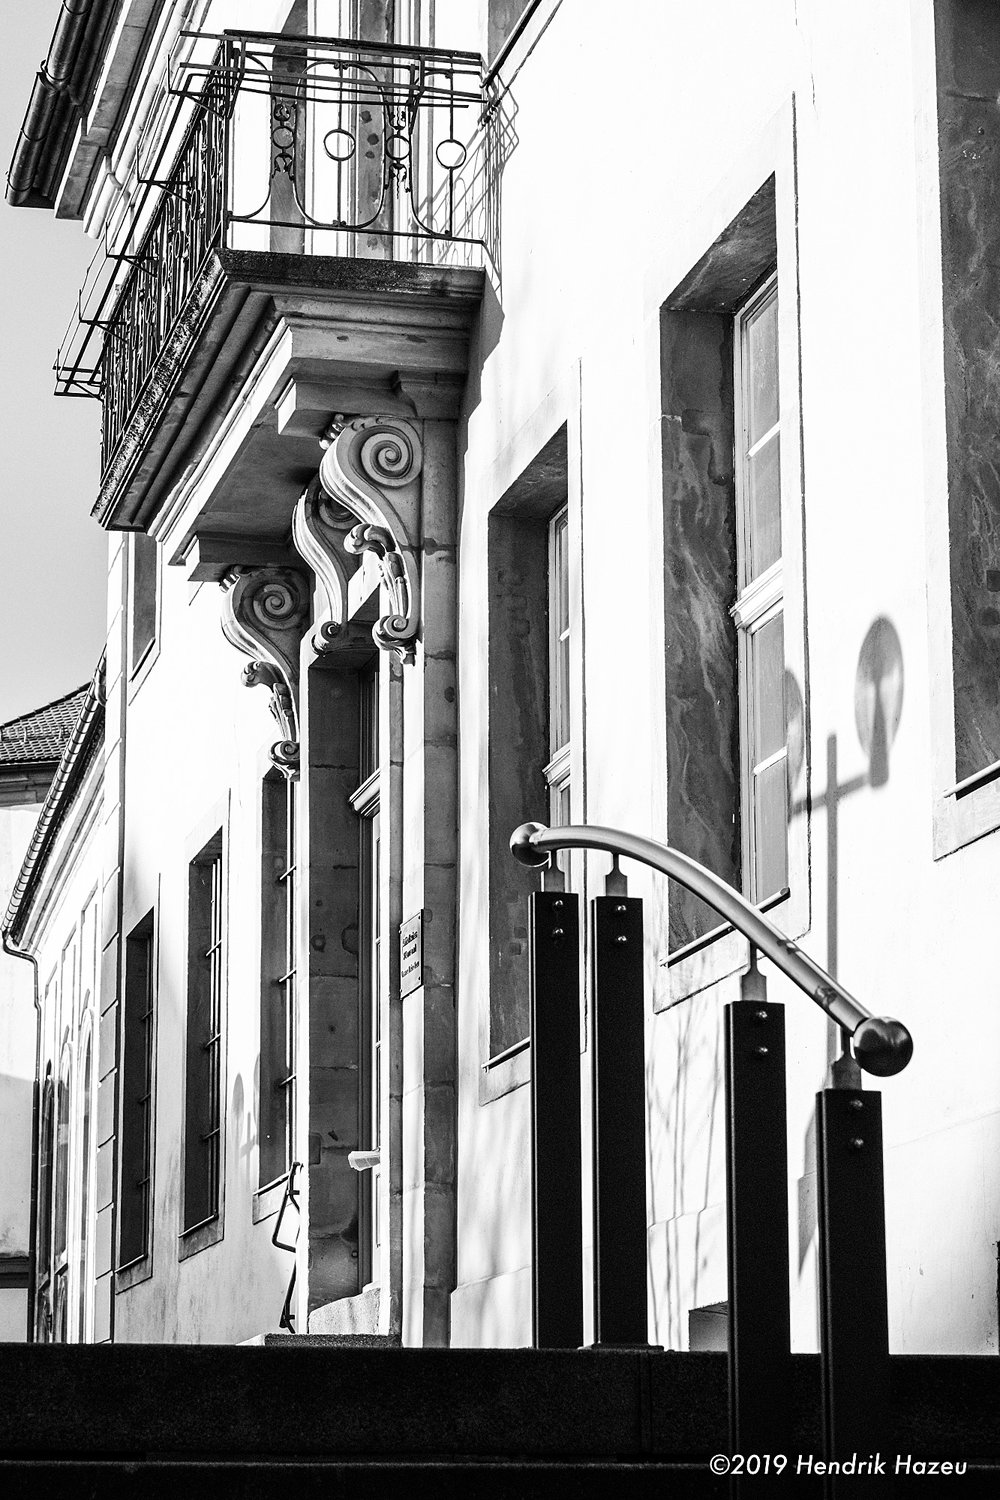 A sunlit façade in Bayreuth's town centre, Fuji X-H1 with XF 56mm f/1.2 @f/8, ACROS-R JPEG processed in LR